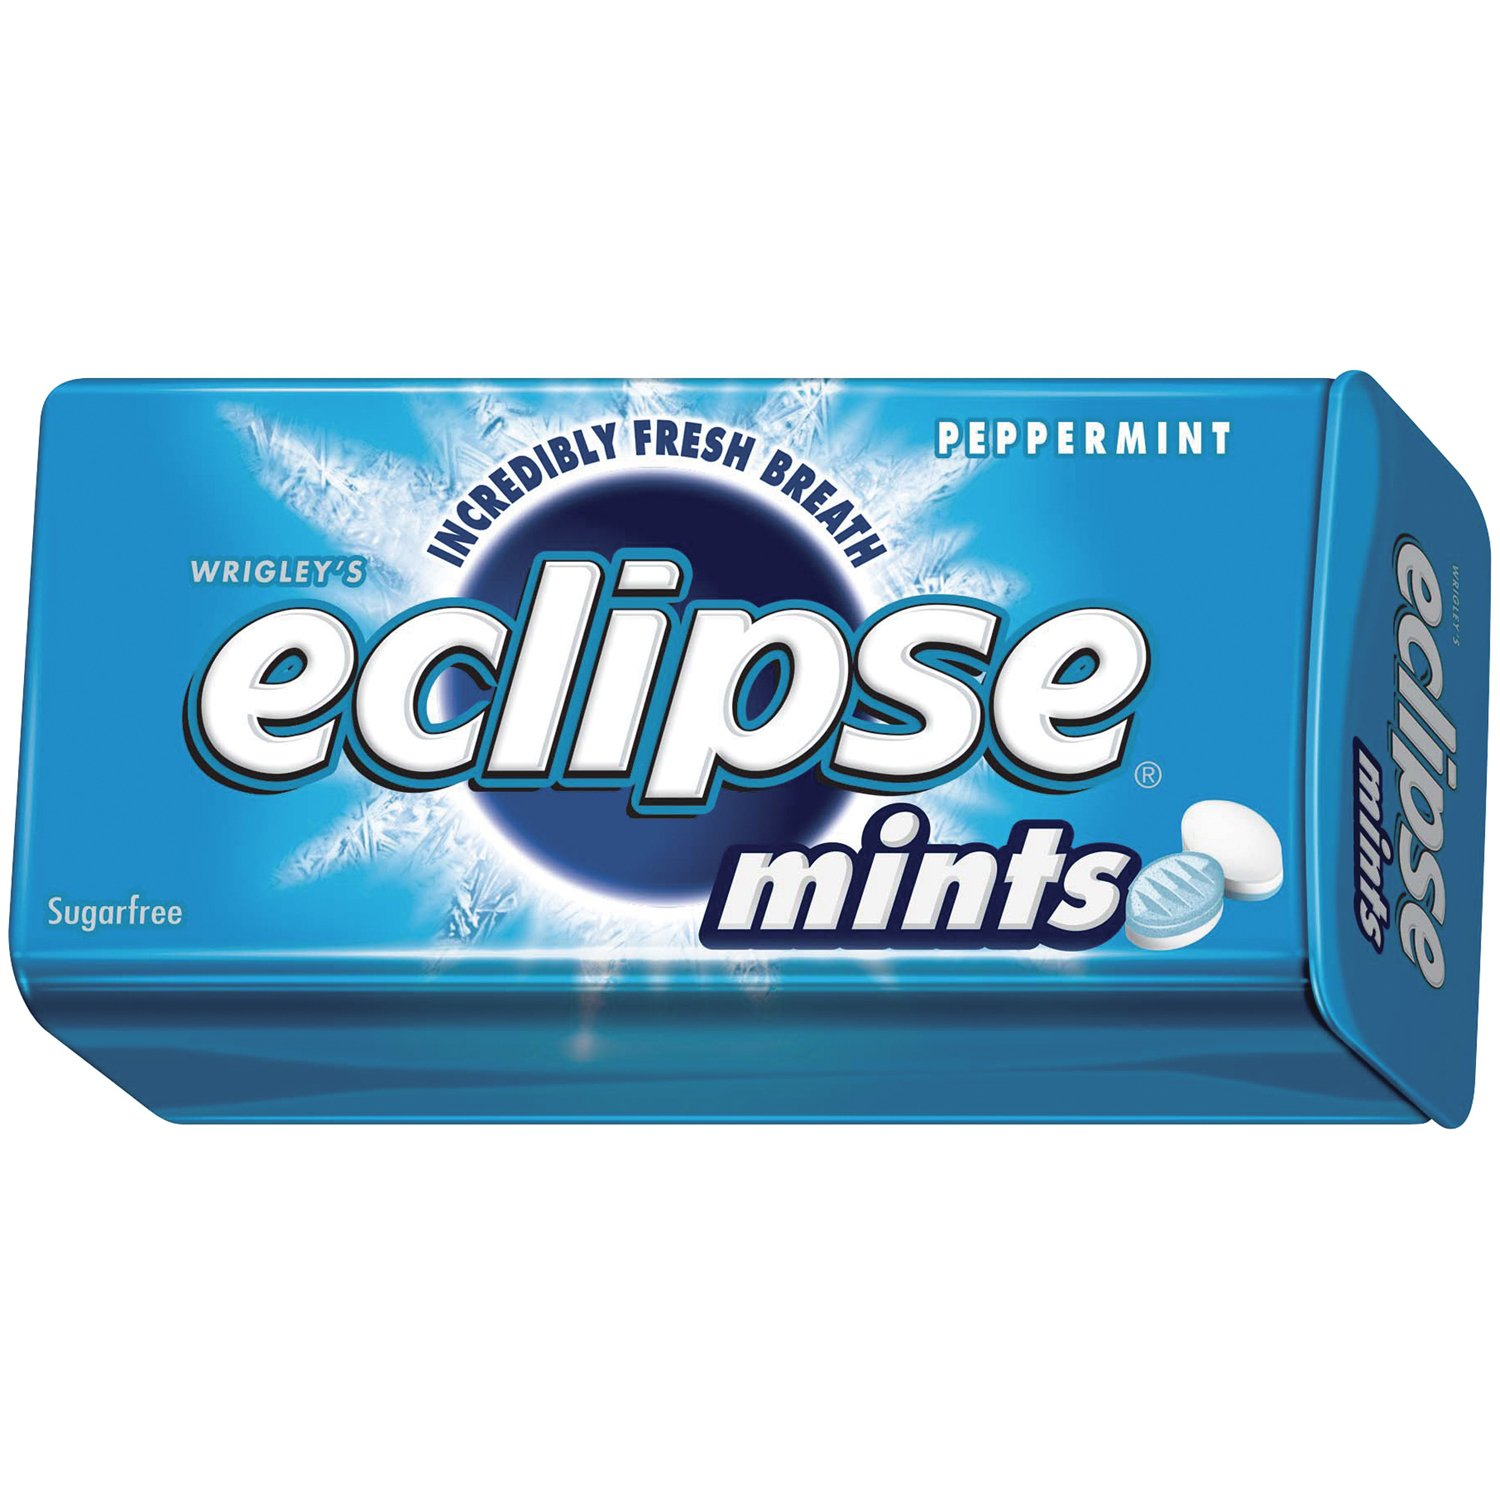 Wrigleys Eclipse Mints Peppermint, 1.2 oz.  (Pack of 8)